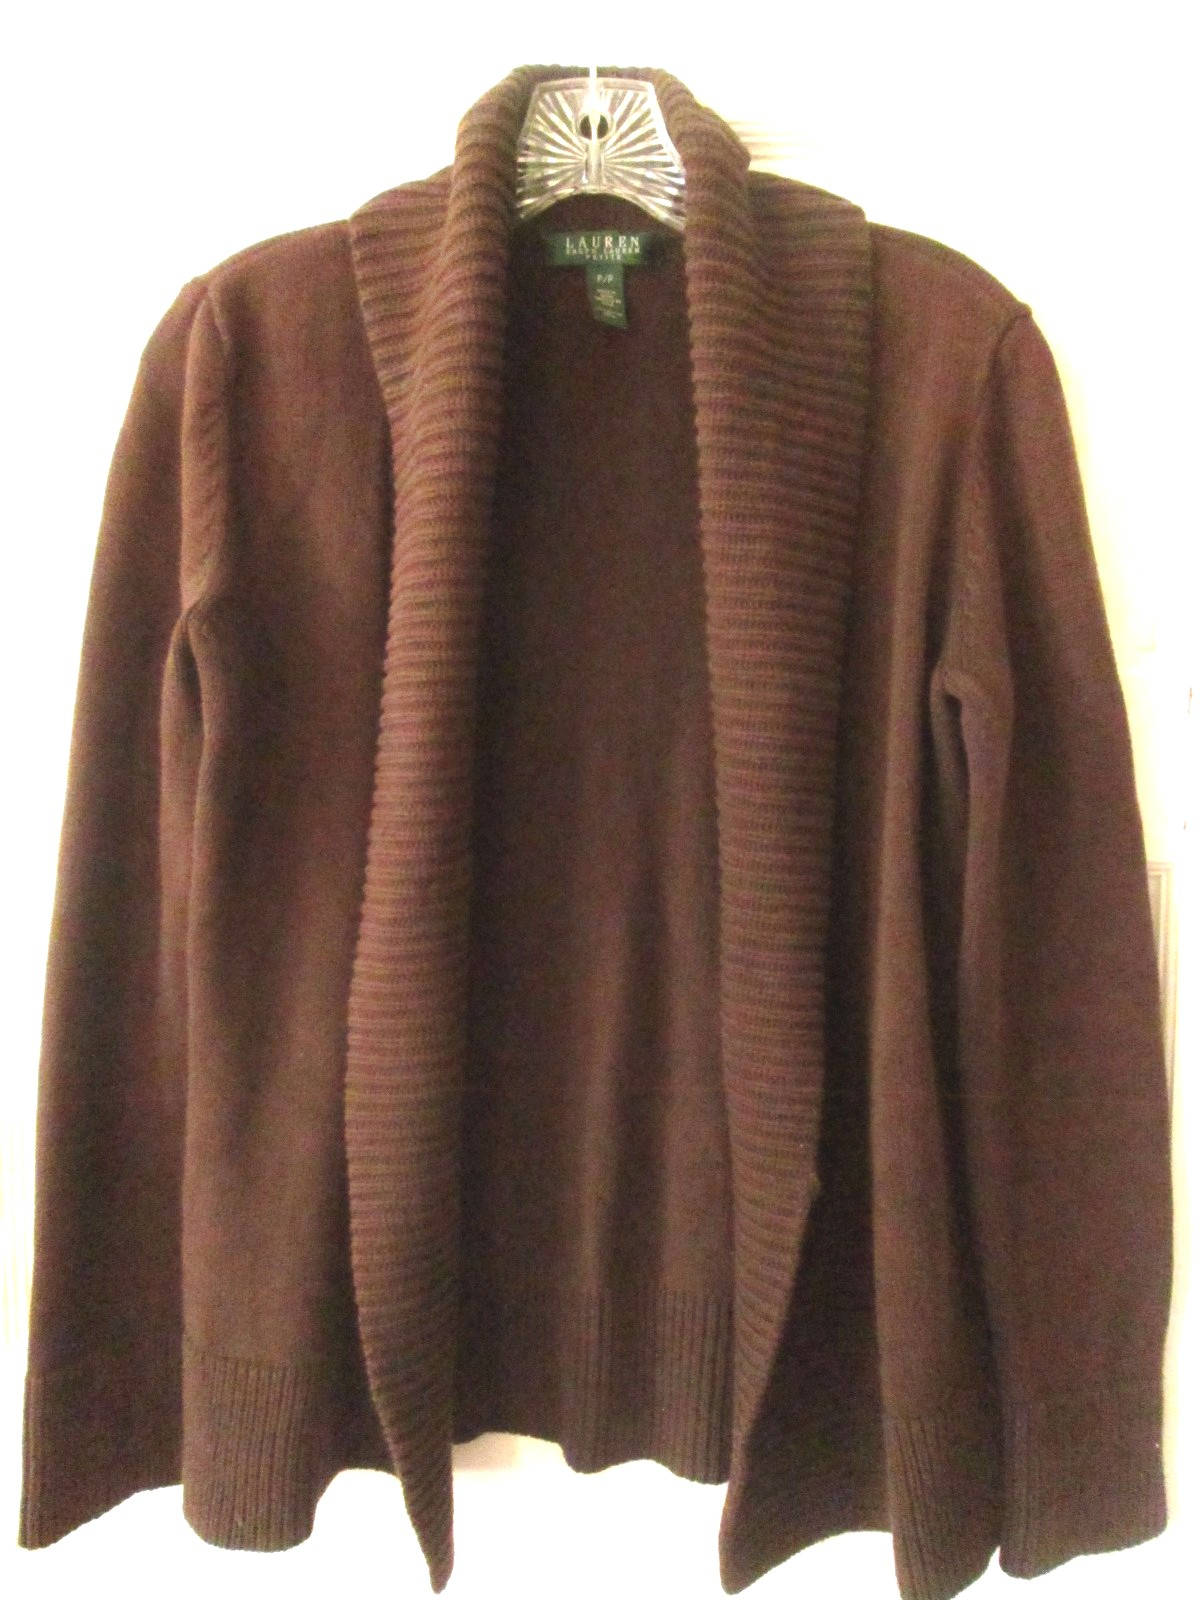 Ralph Lauren Brown Cotton Cardigan Sweater PP